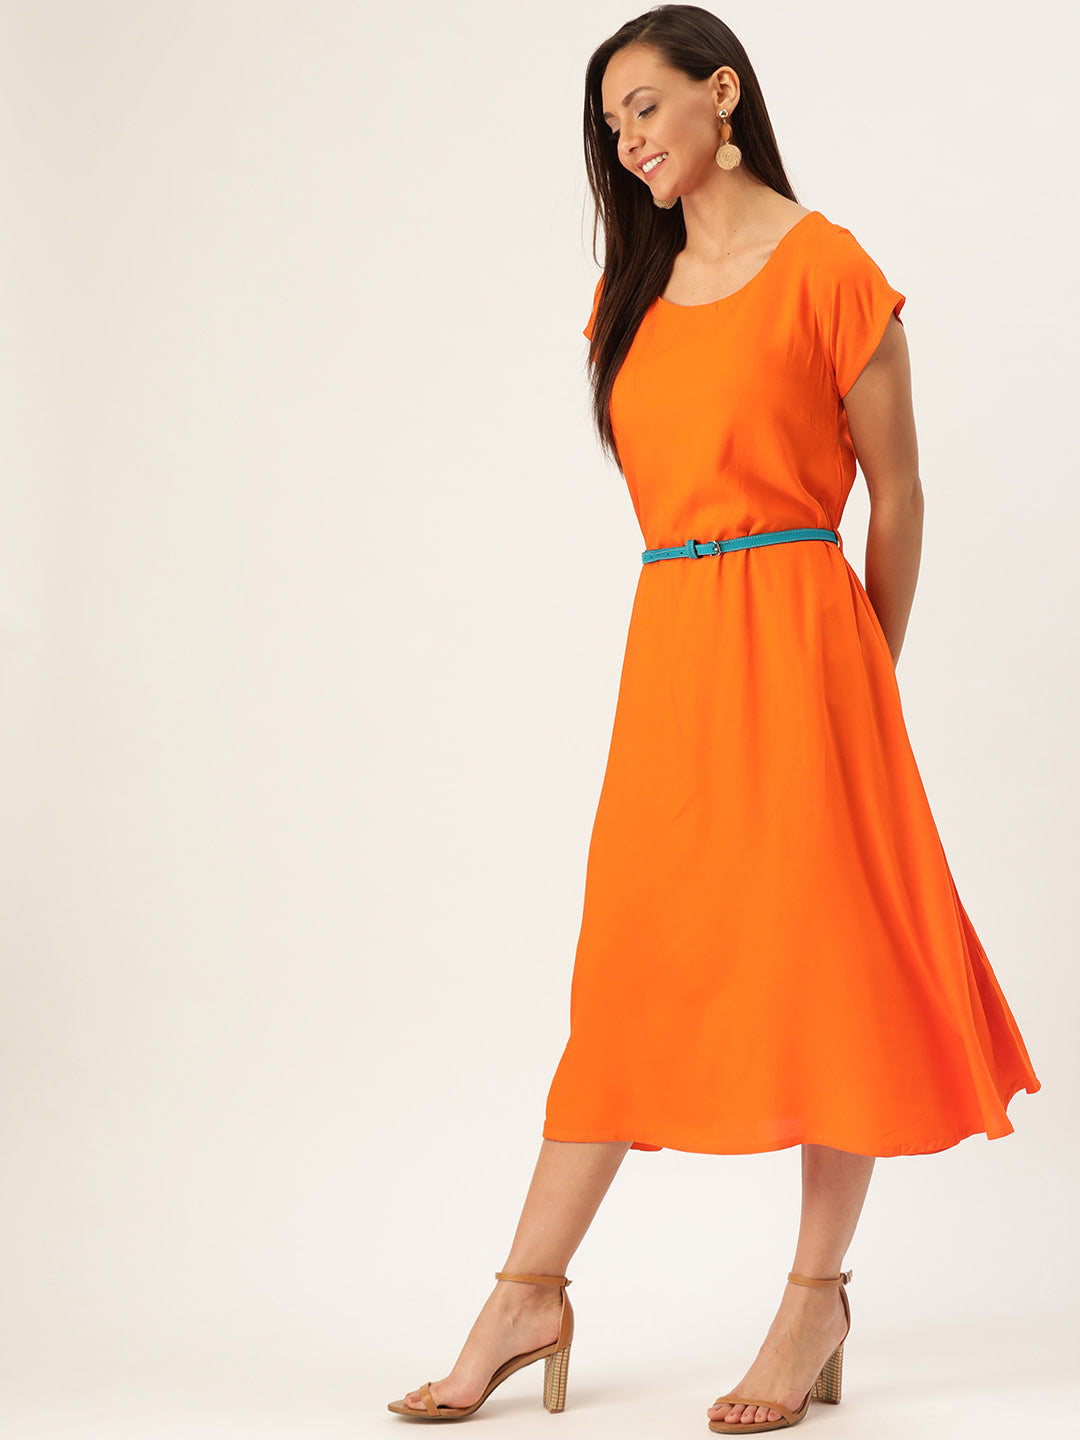 Orange Dress Aqua Belt